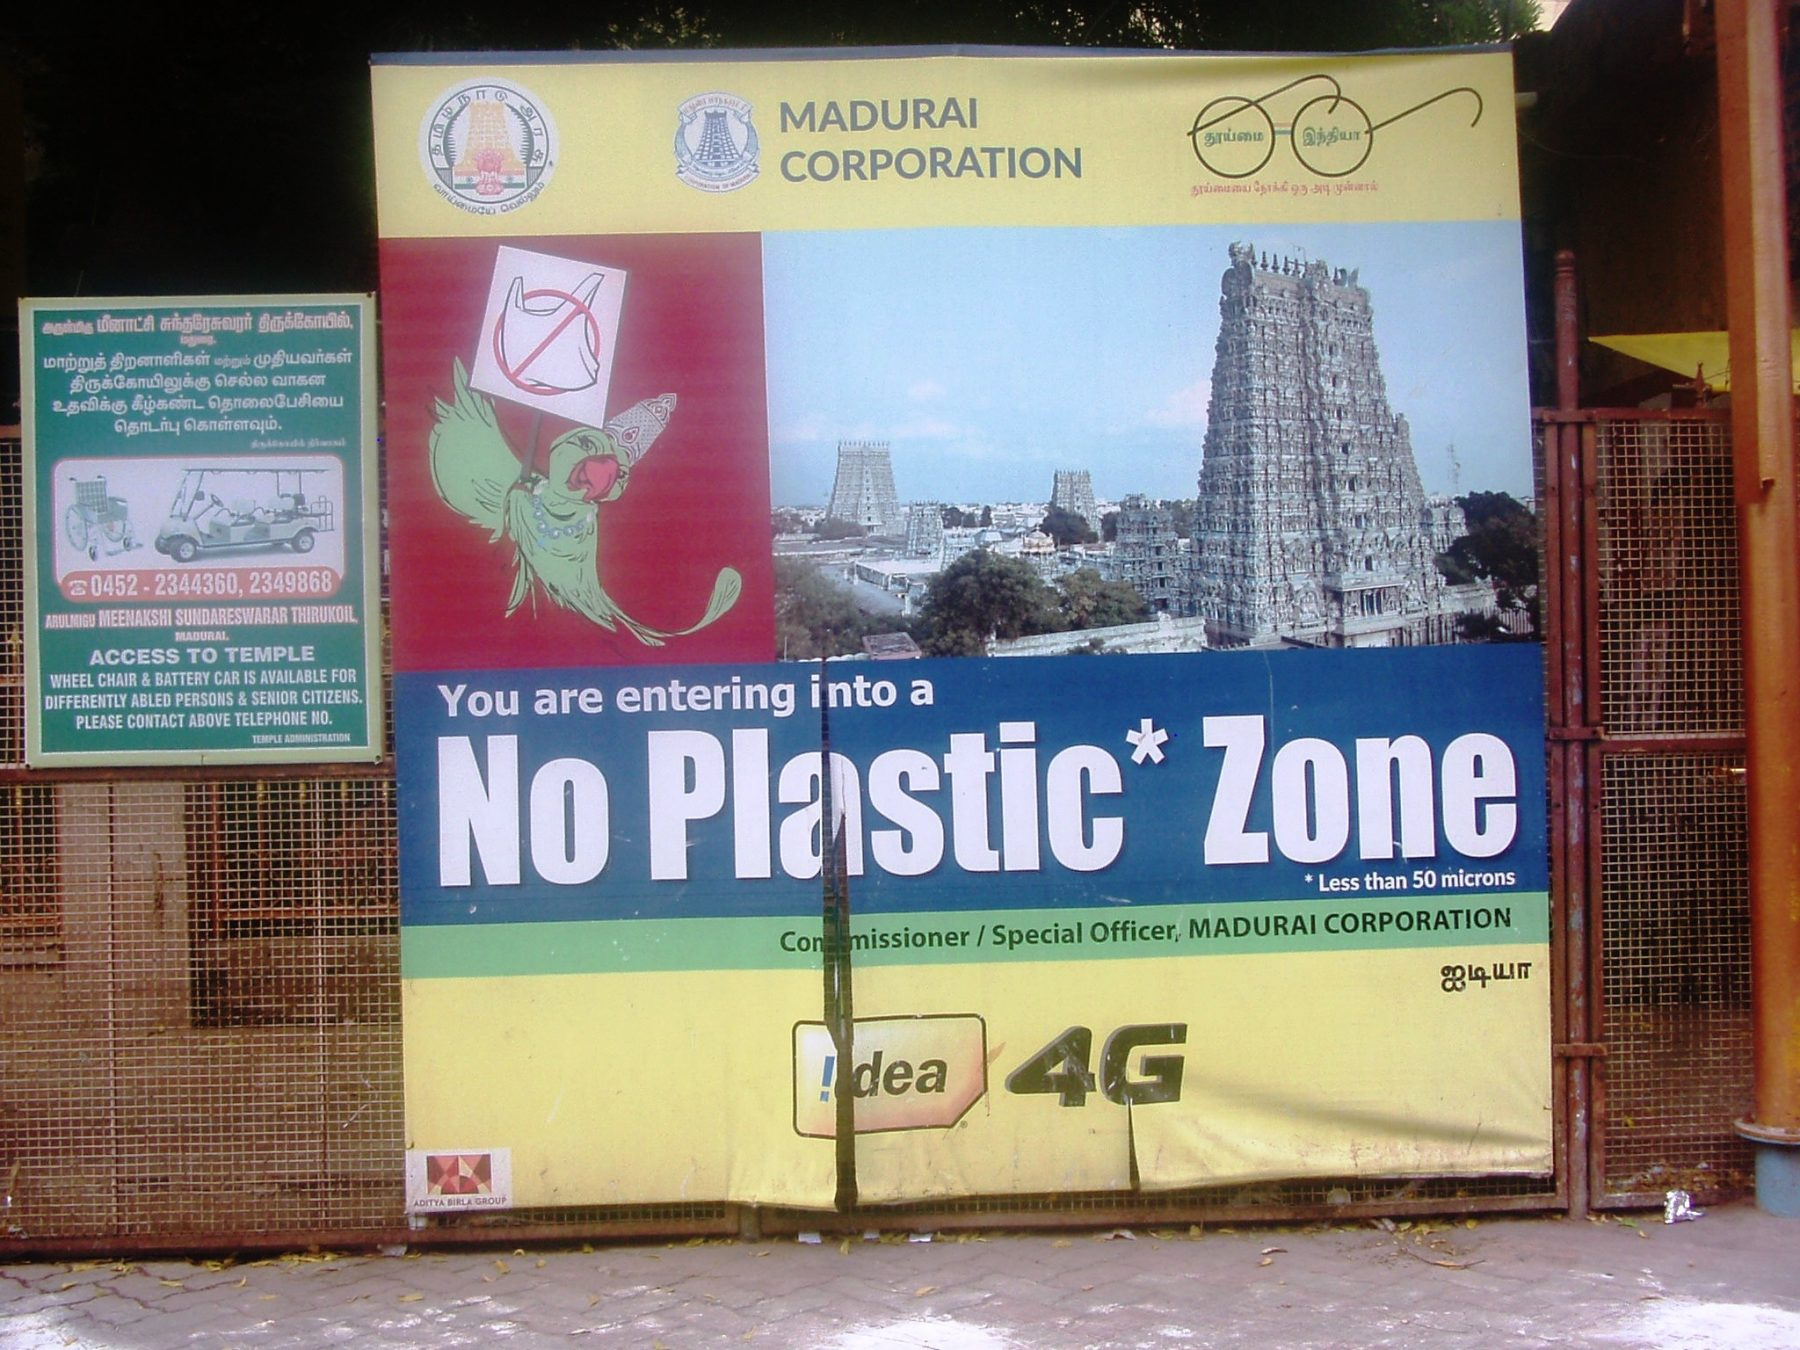 Waste aware message in Madurai